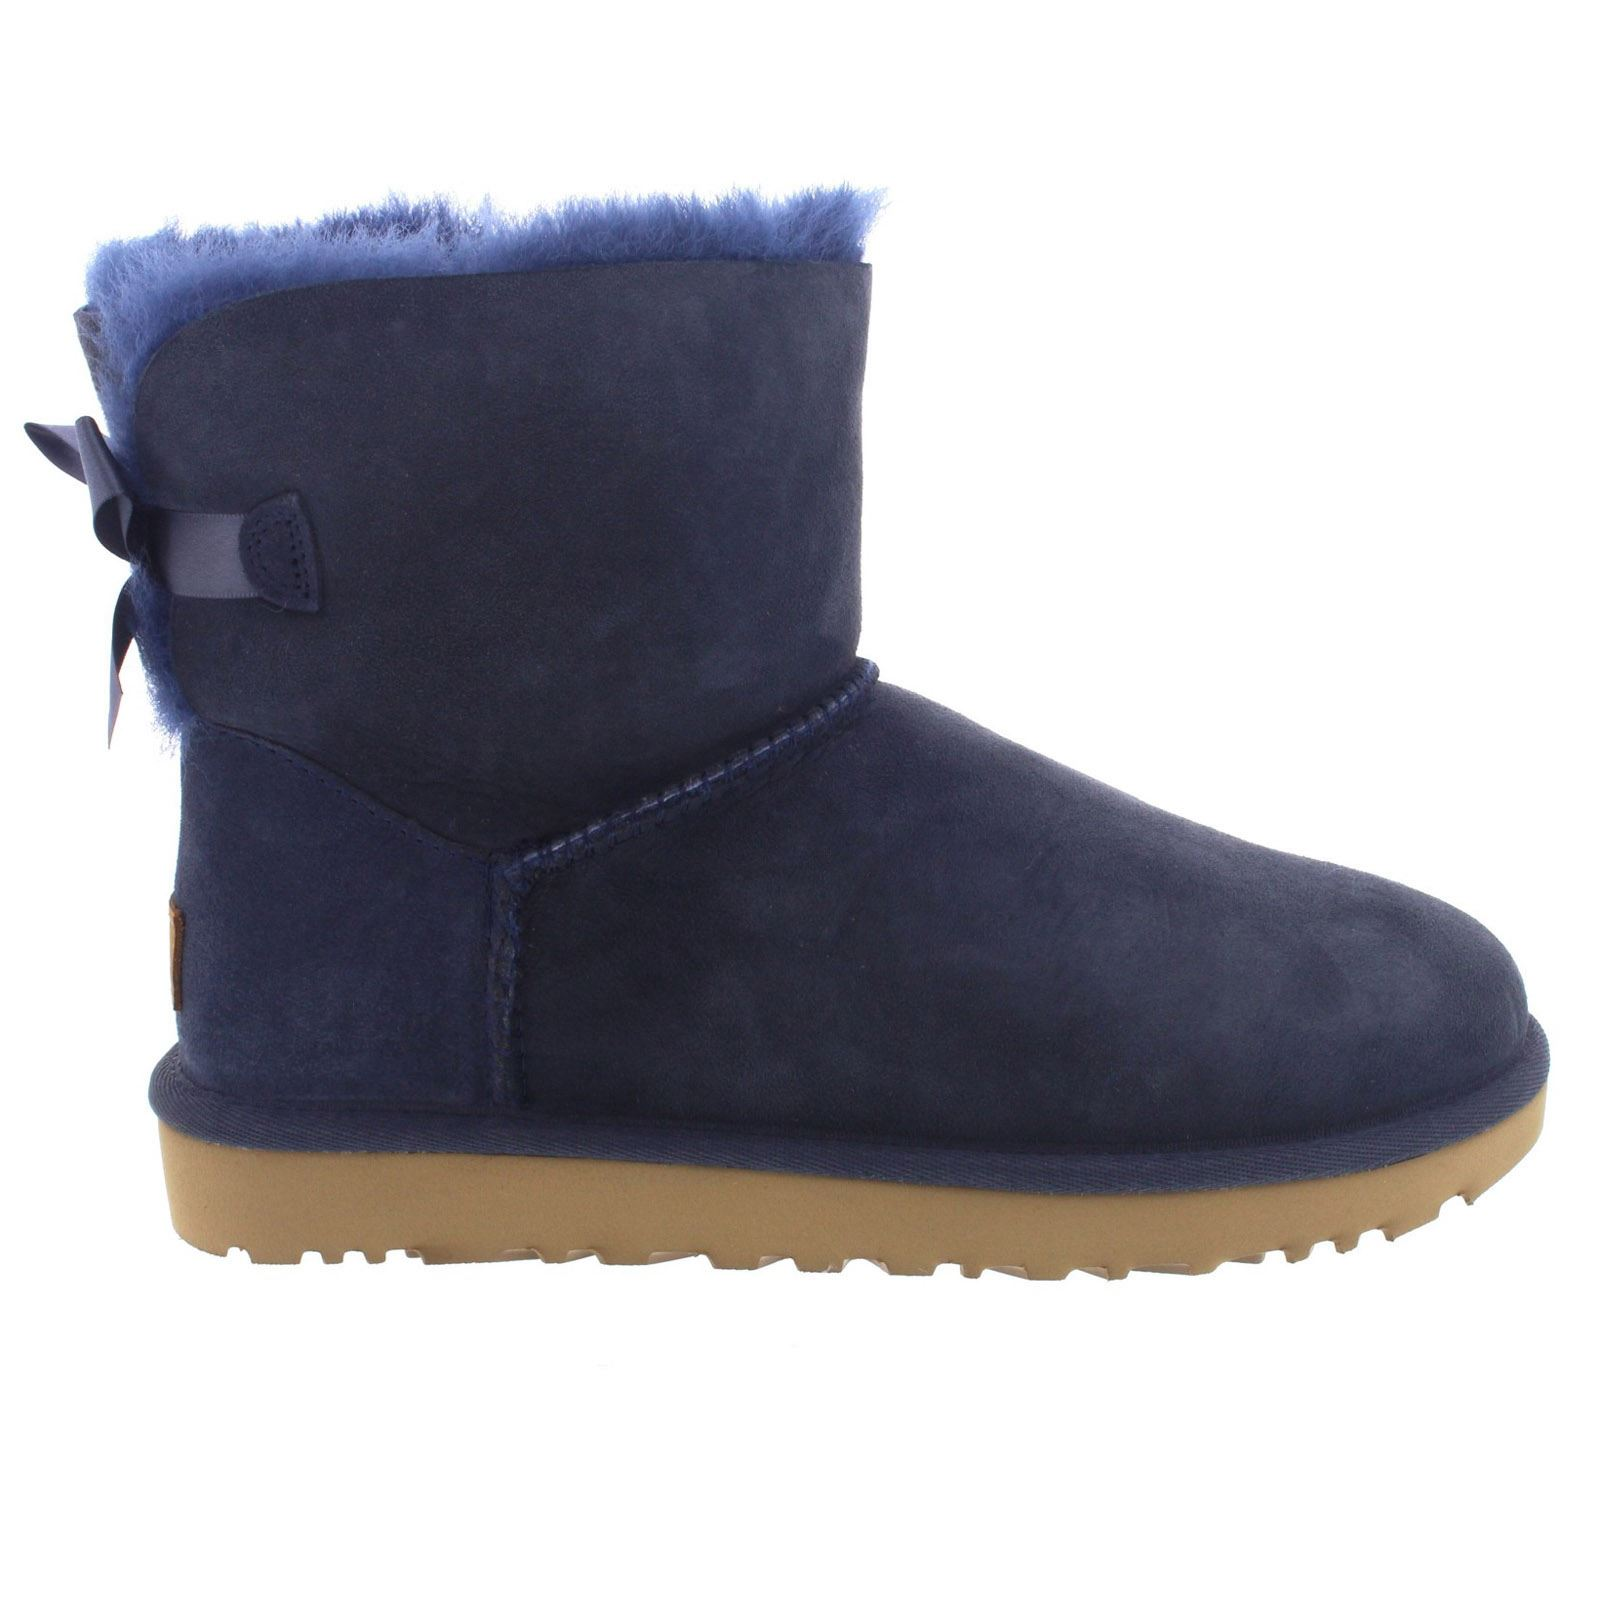 ugg australia mini bailey bow ii navy womens boots ebay